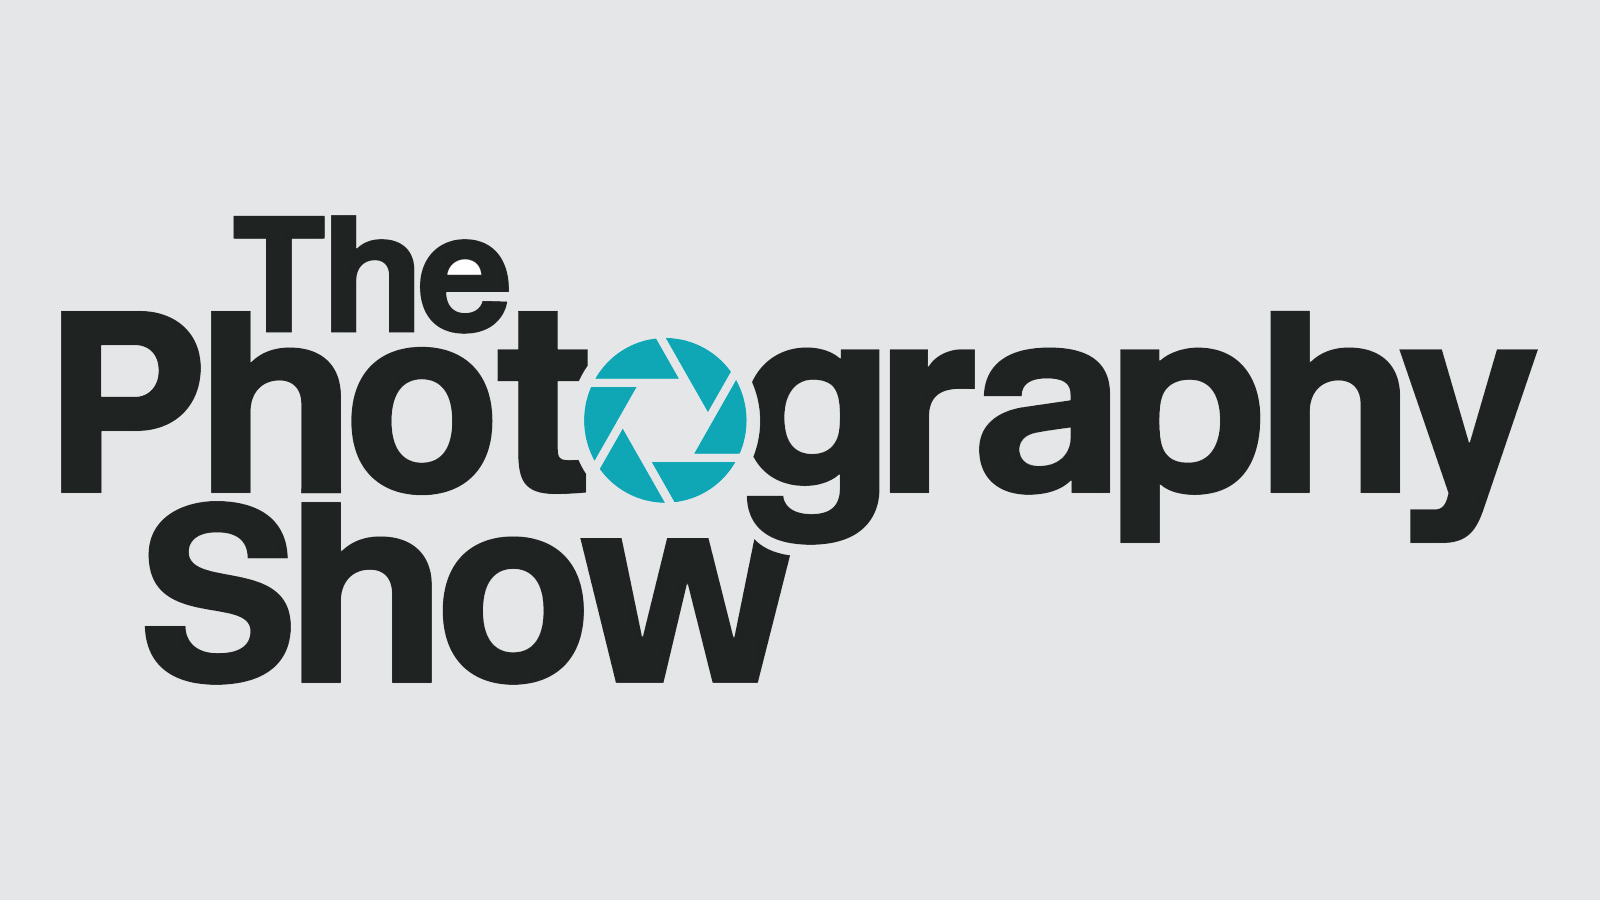 The Photography Show is postponed until September 2020 – here's what to do next